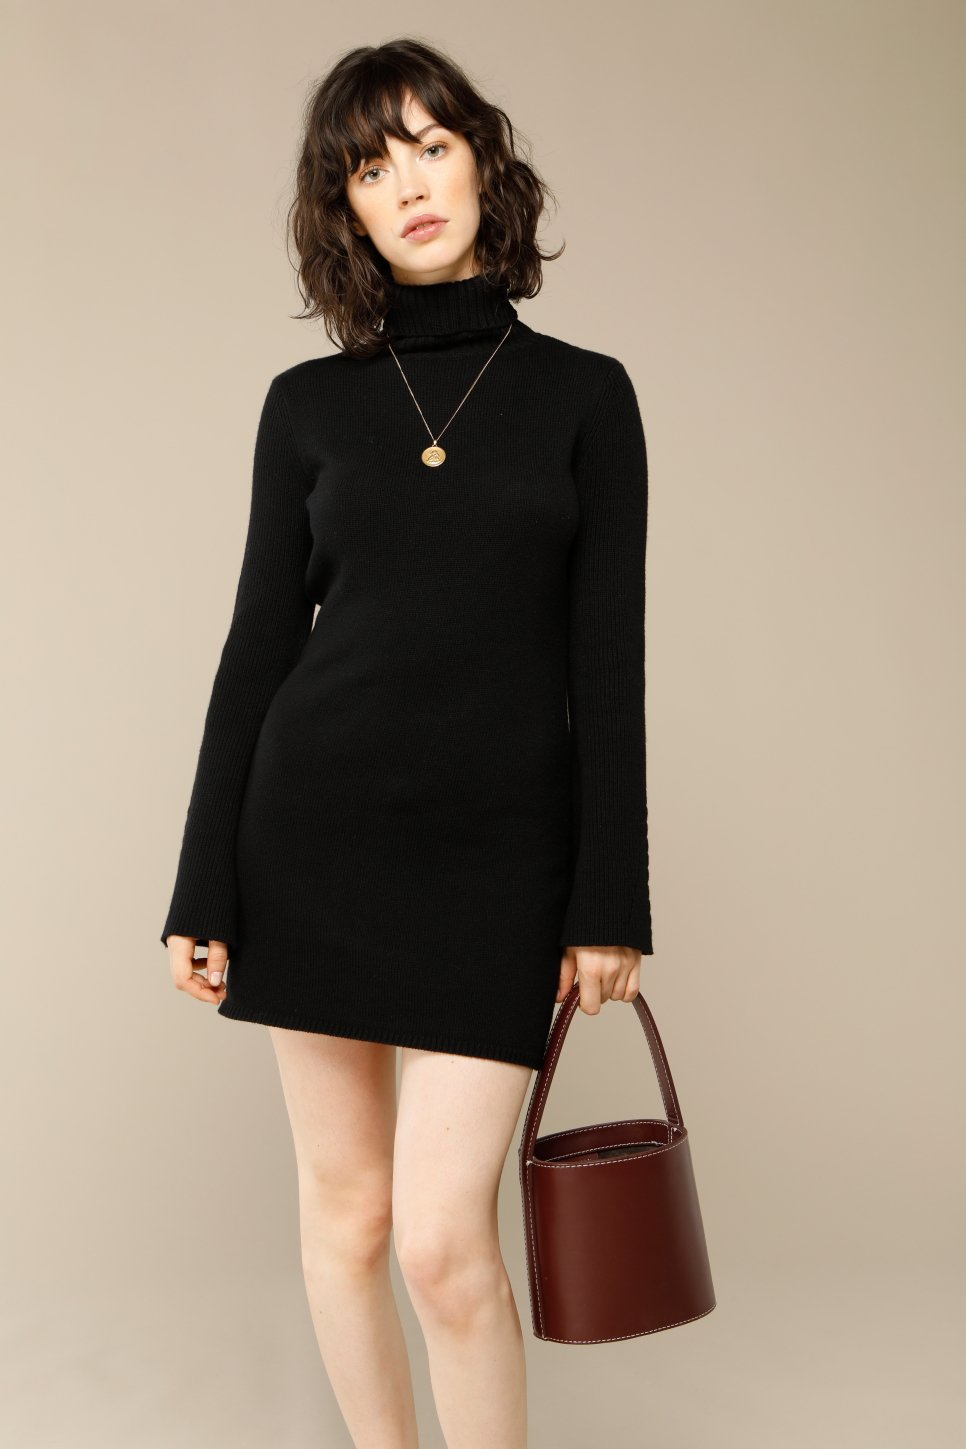 SOPHIE knitted black dress